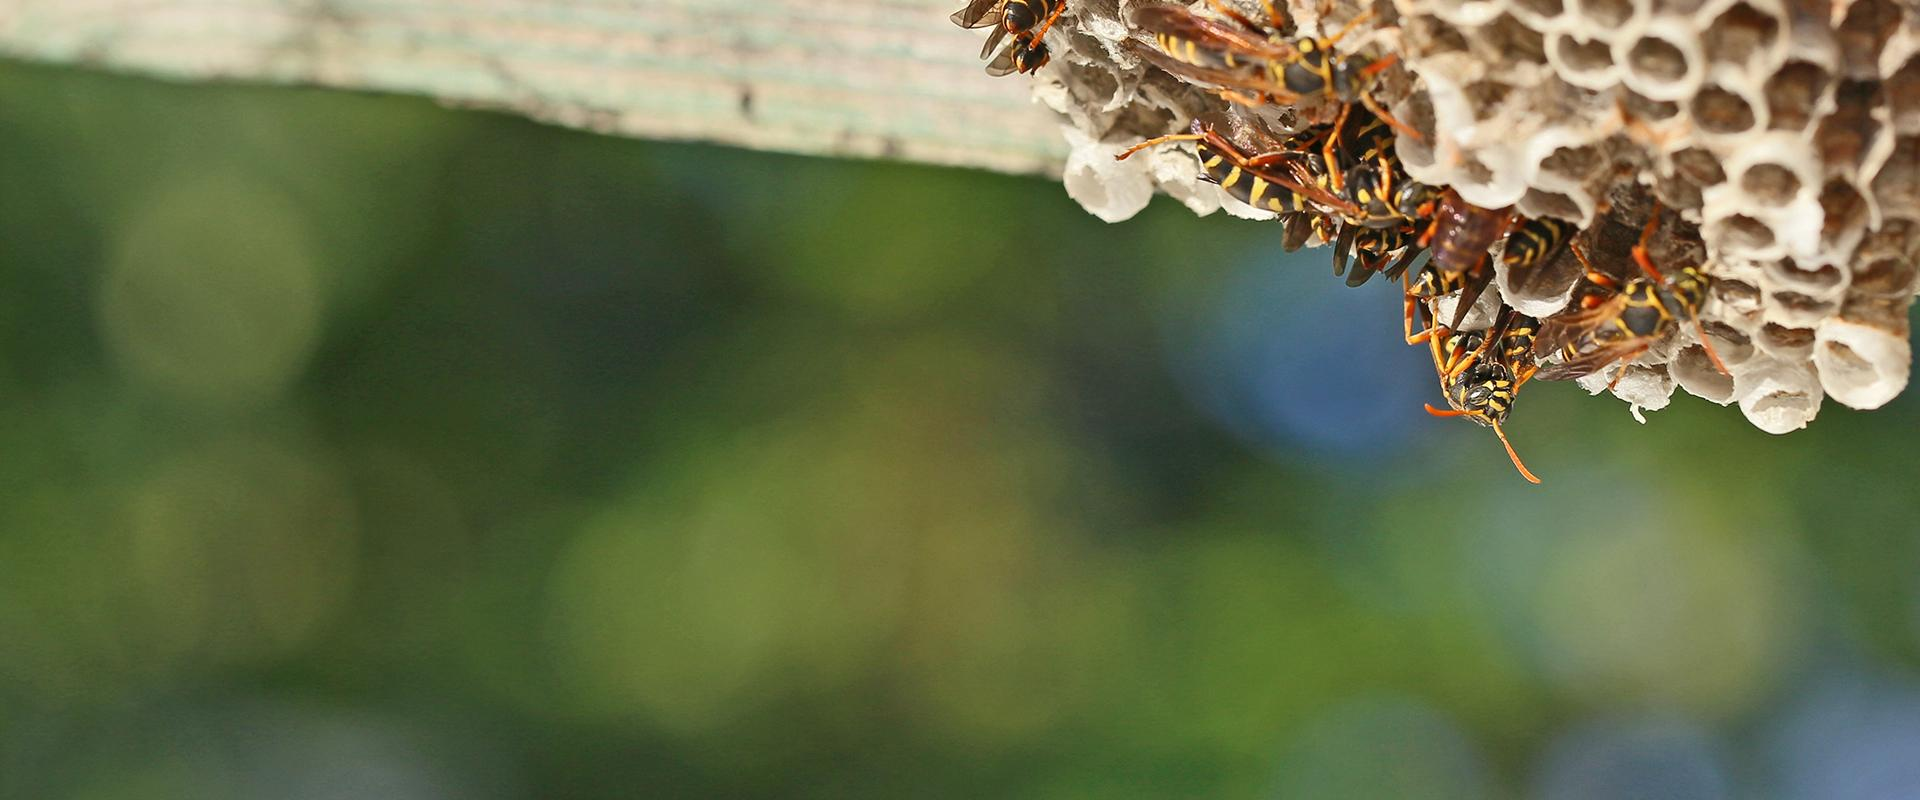 paper wasps on and around their nest